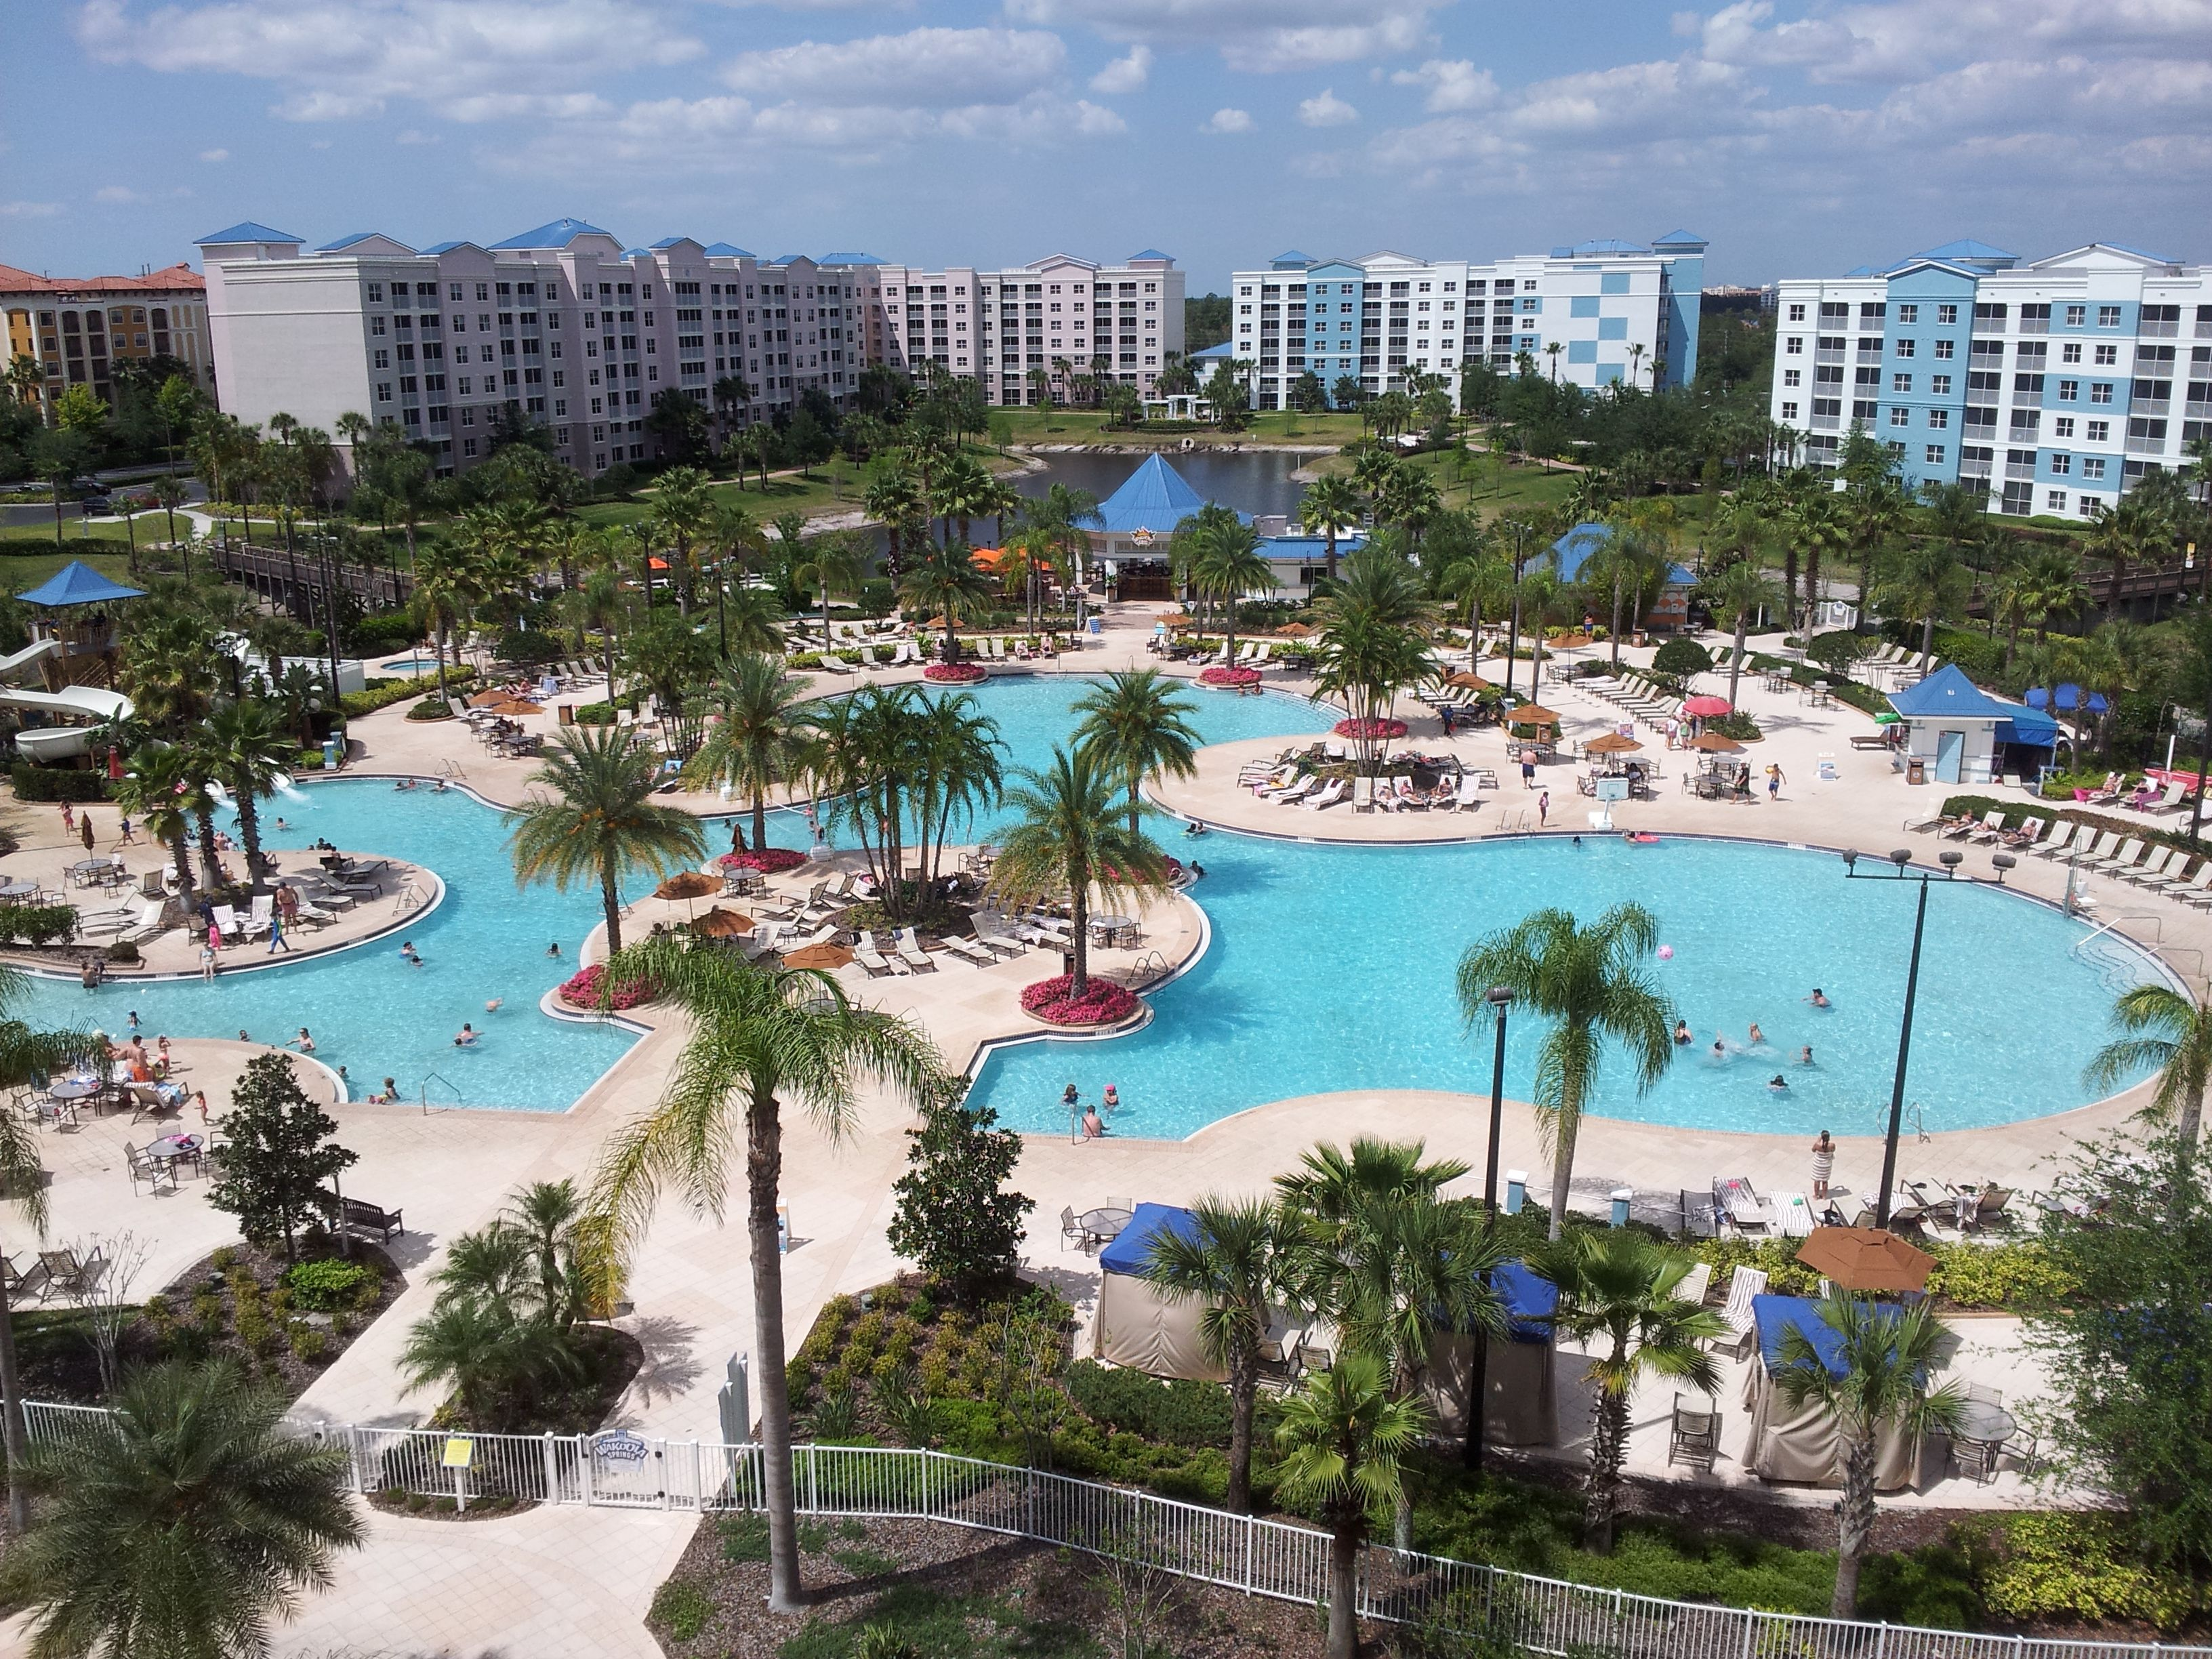 The Fountains Resort in Orlando Florida. View from a 6th